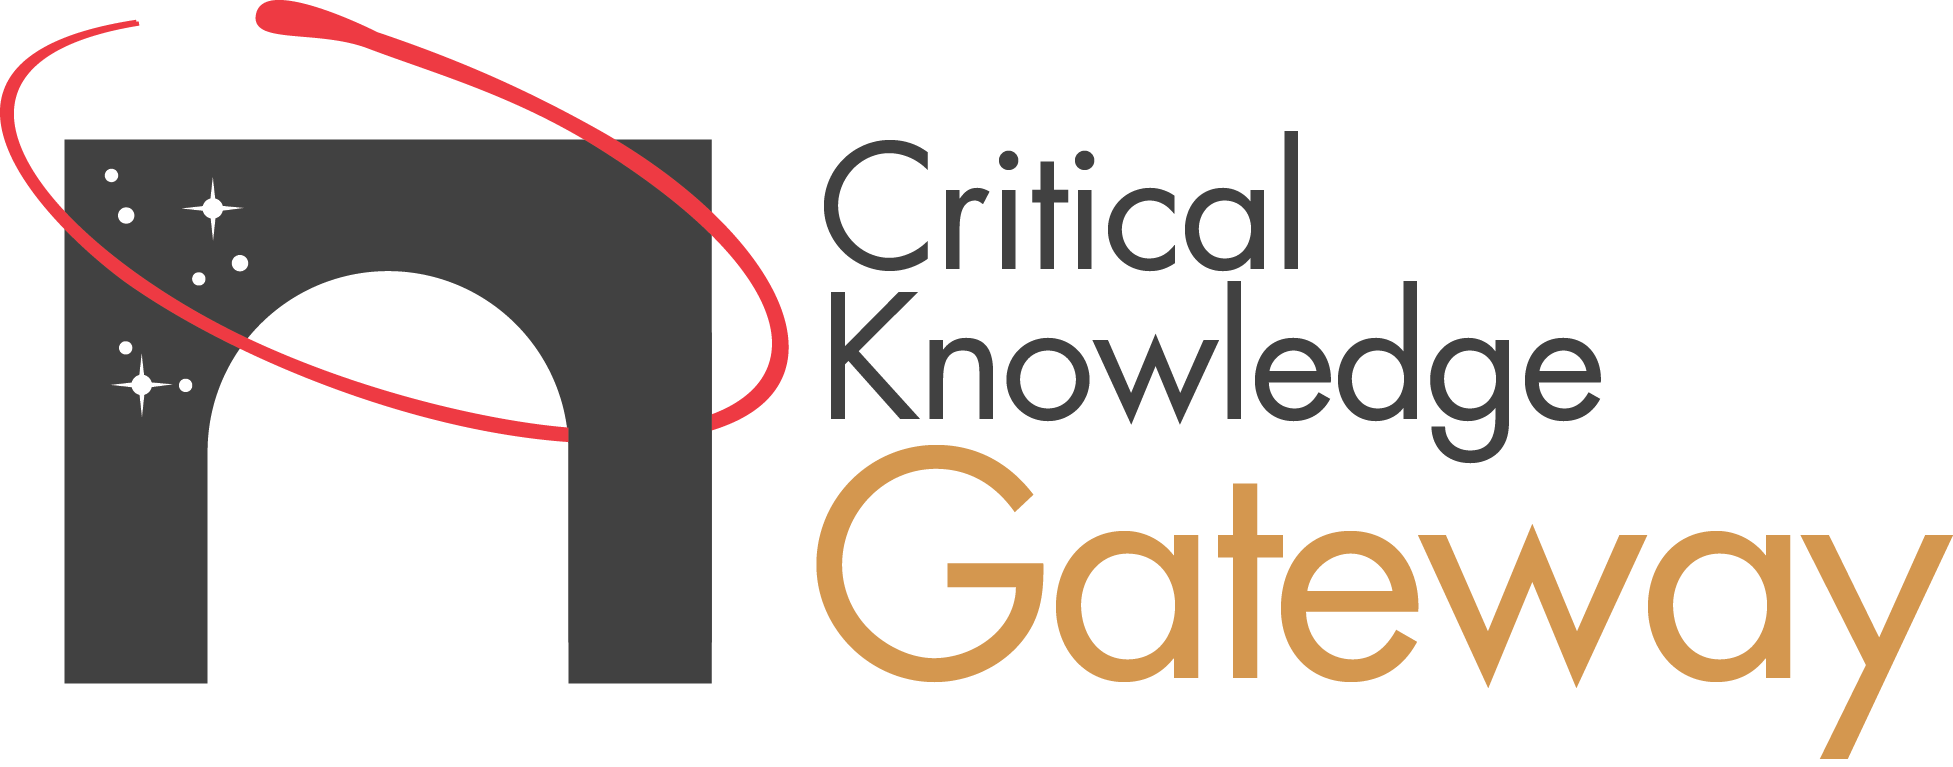 Critical Knowledge Gateway logo